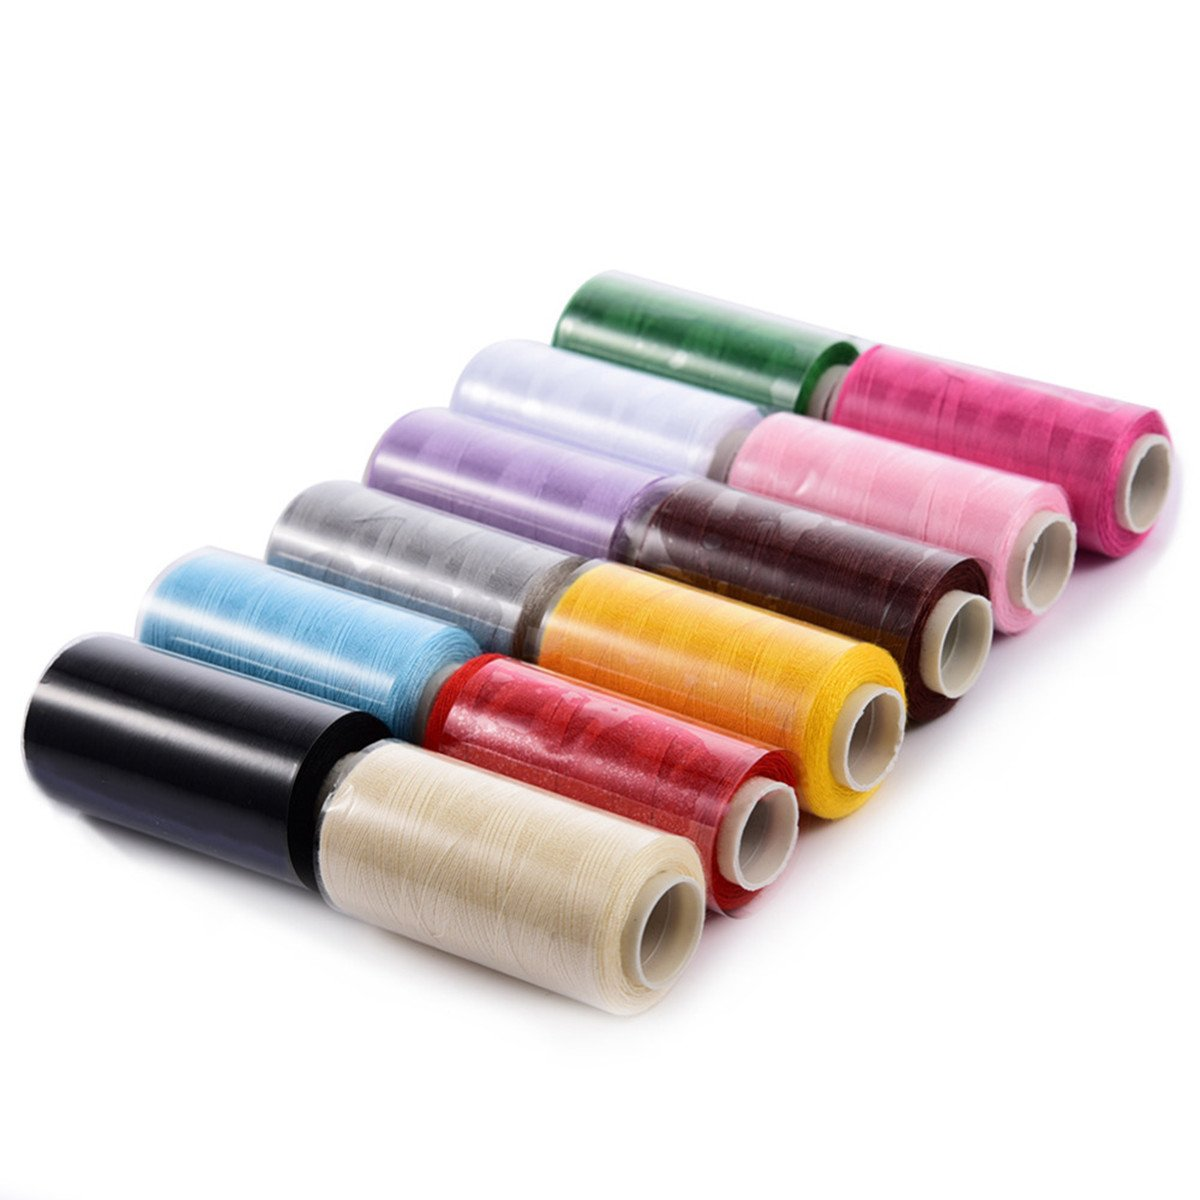 400 Yards White All Purpose Thread Sewing Mending Repairing Clothes Craft